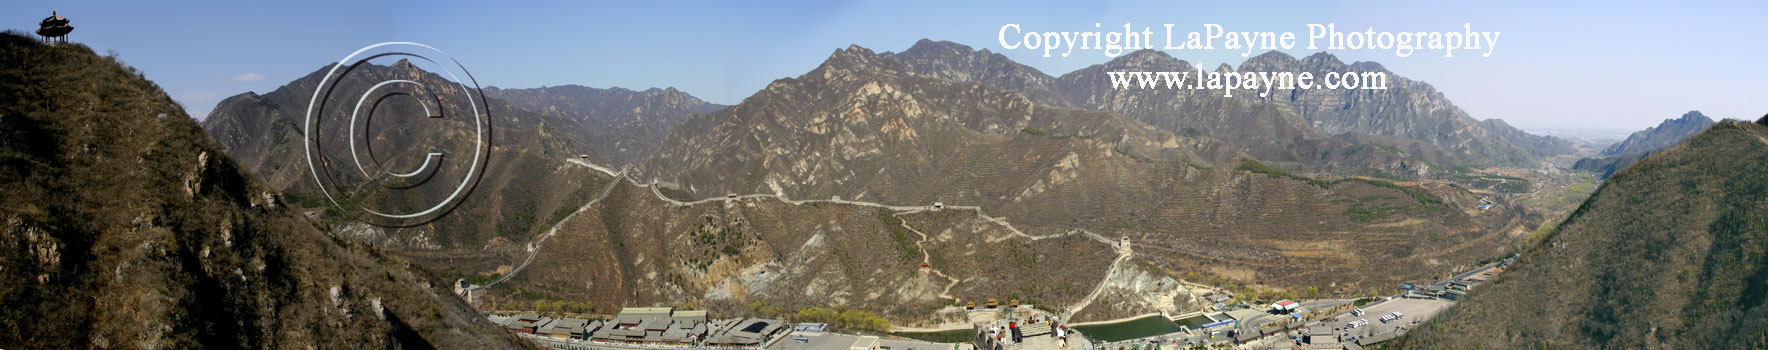 Great Wall of China Panorama